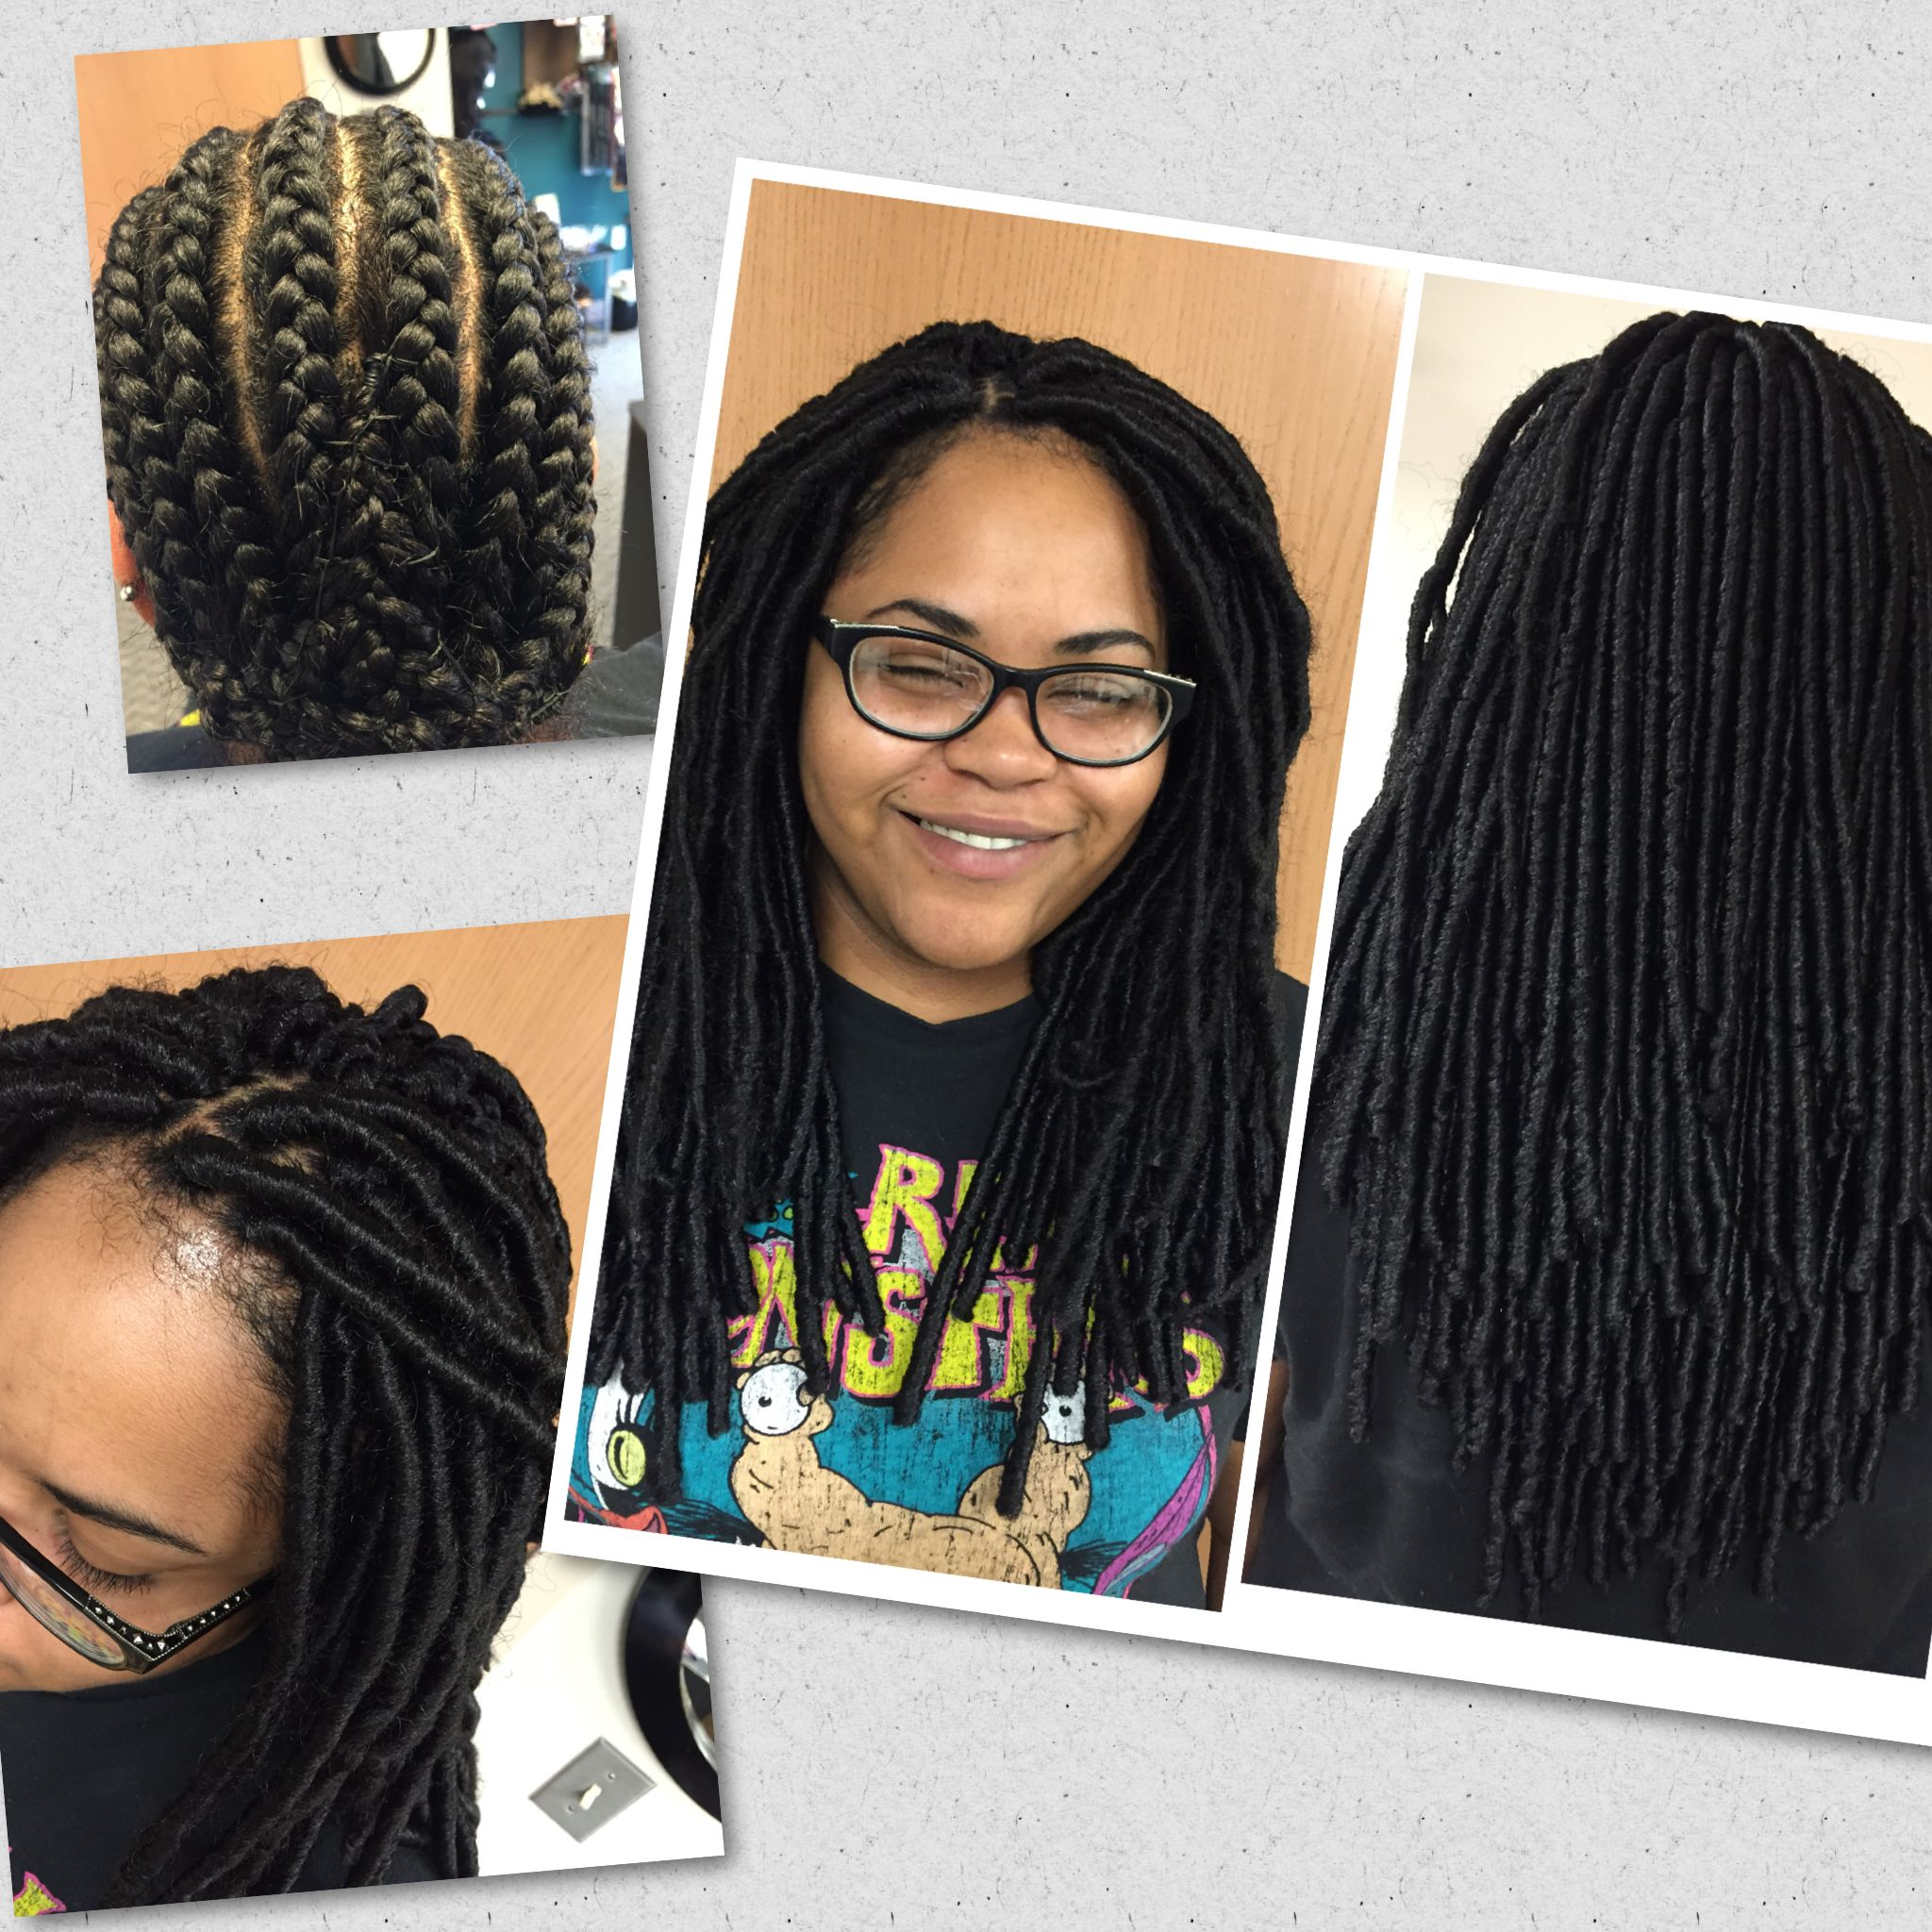 Crochet Braids Using Jamaica Braid By Femi 7pks Used Client Requested This Style From